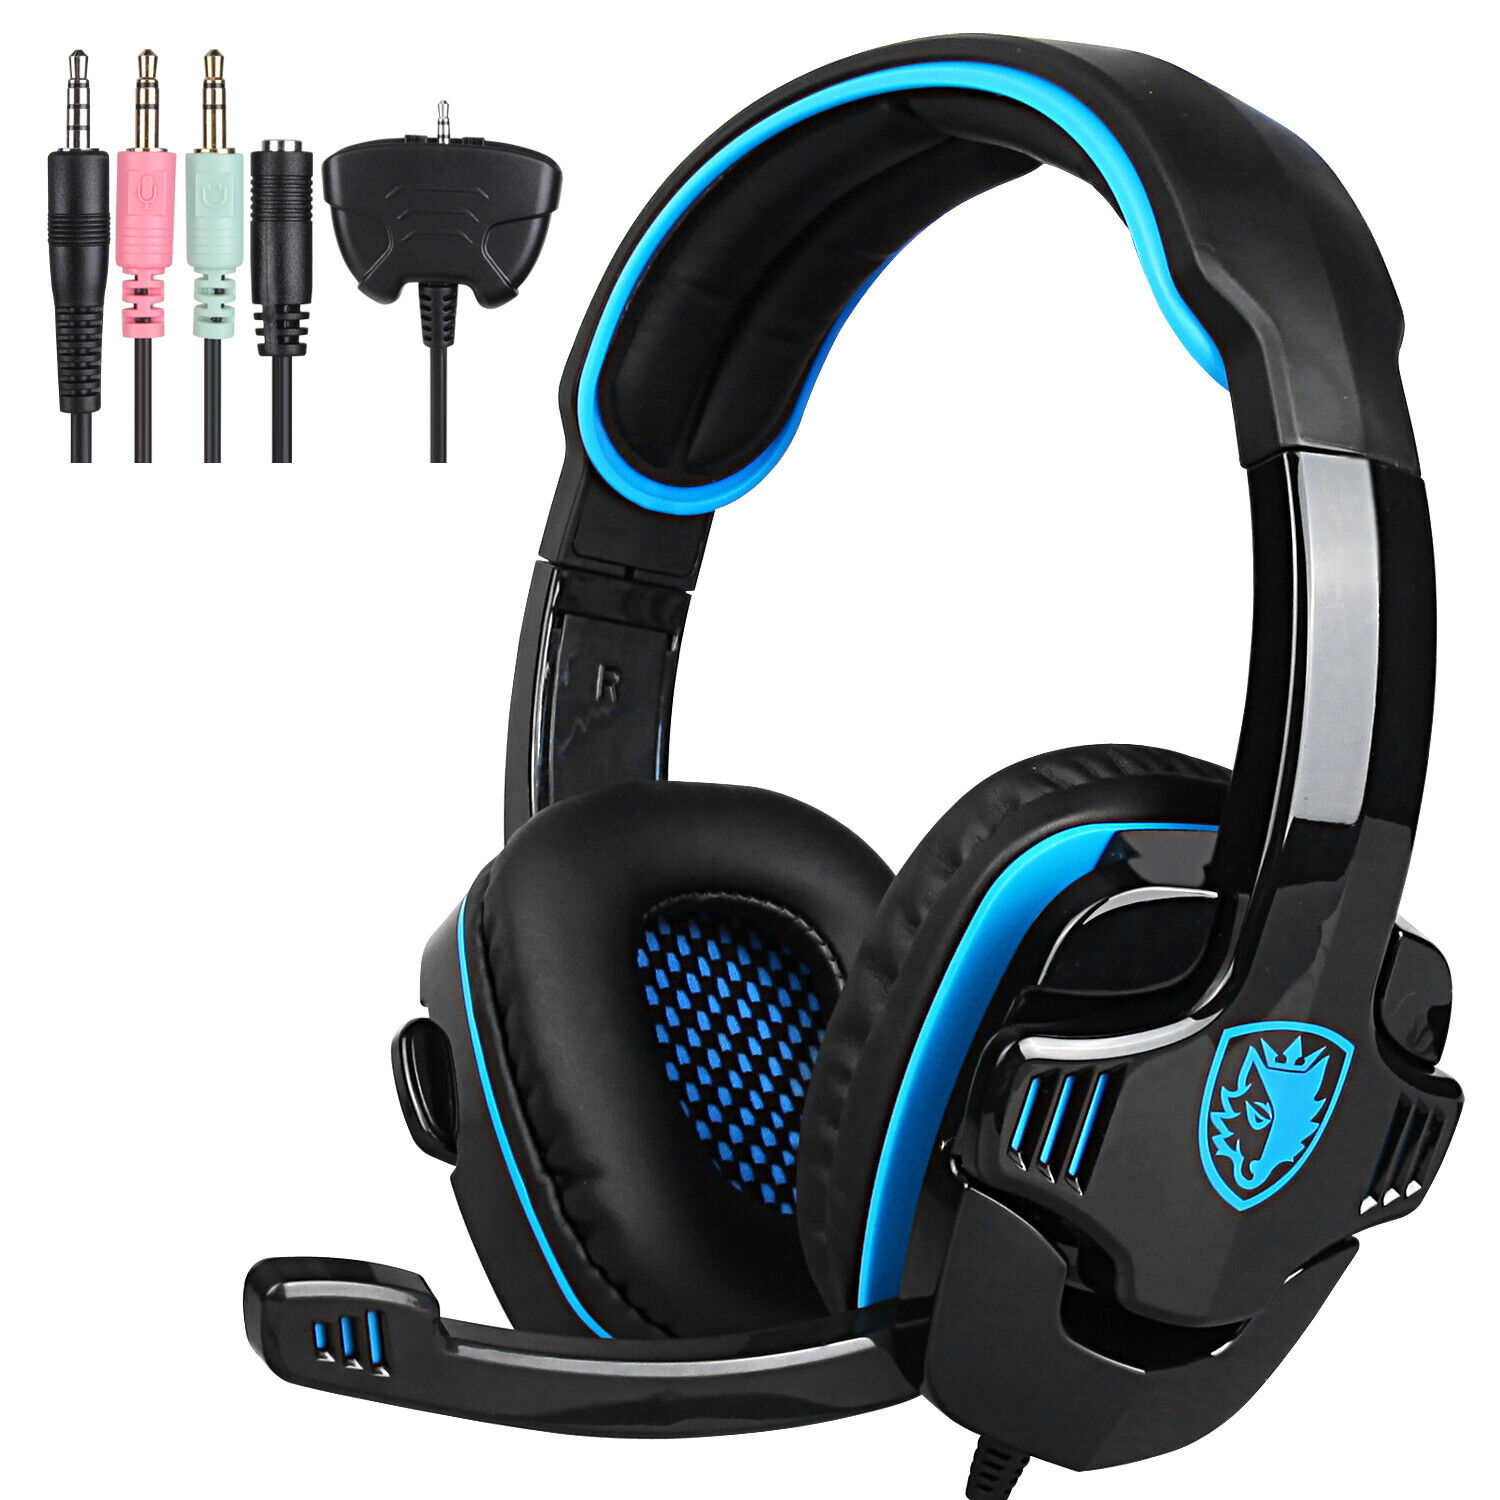 SADES 708GT Stereo Bass Surround Gaming Headset for PS4 New